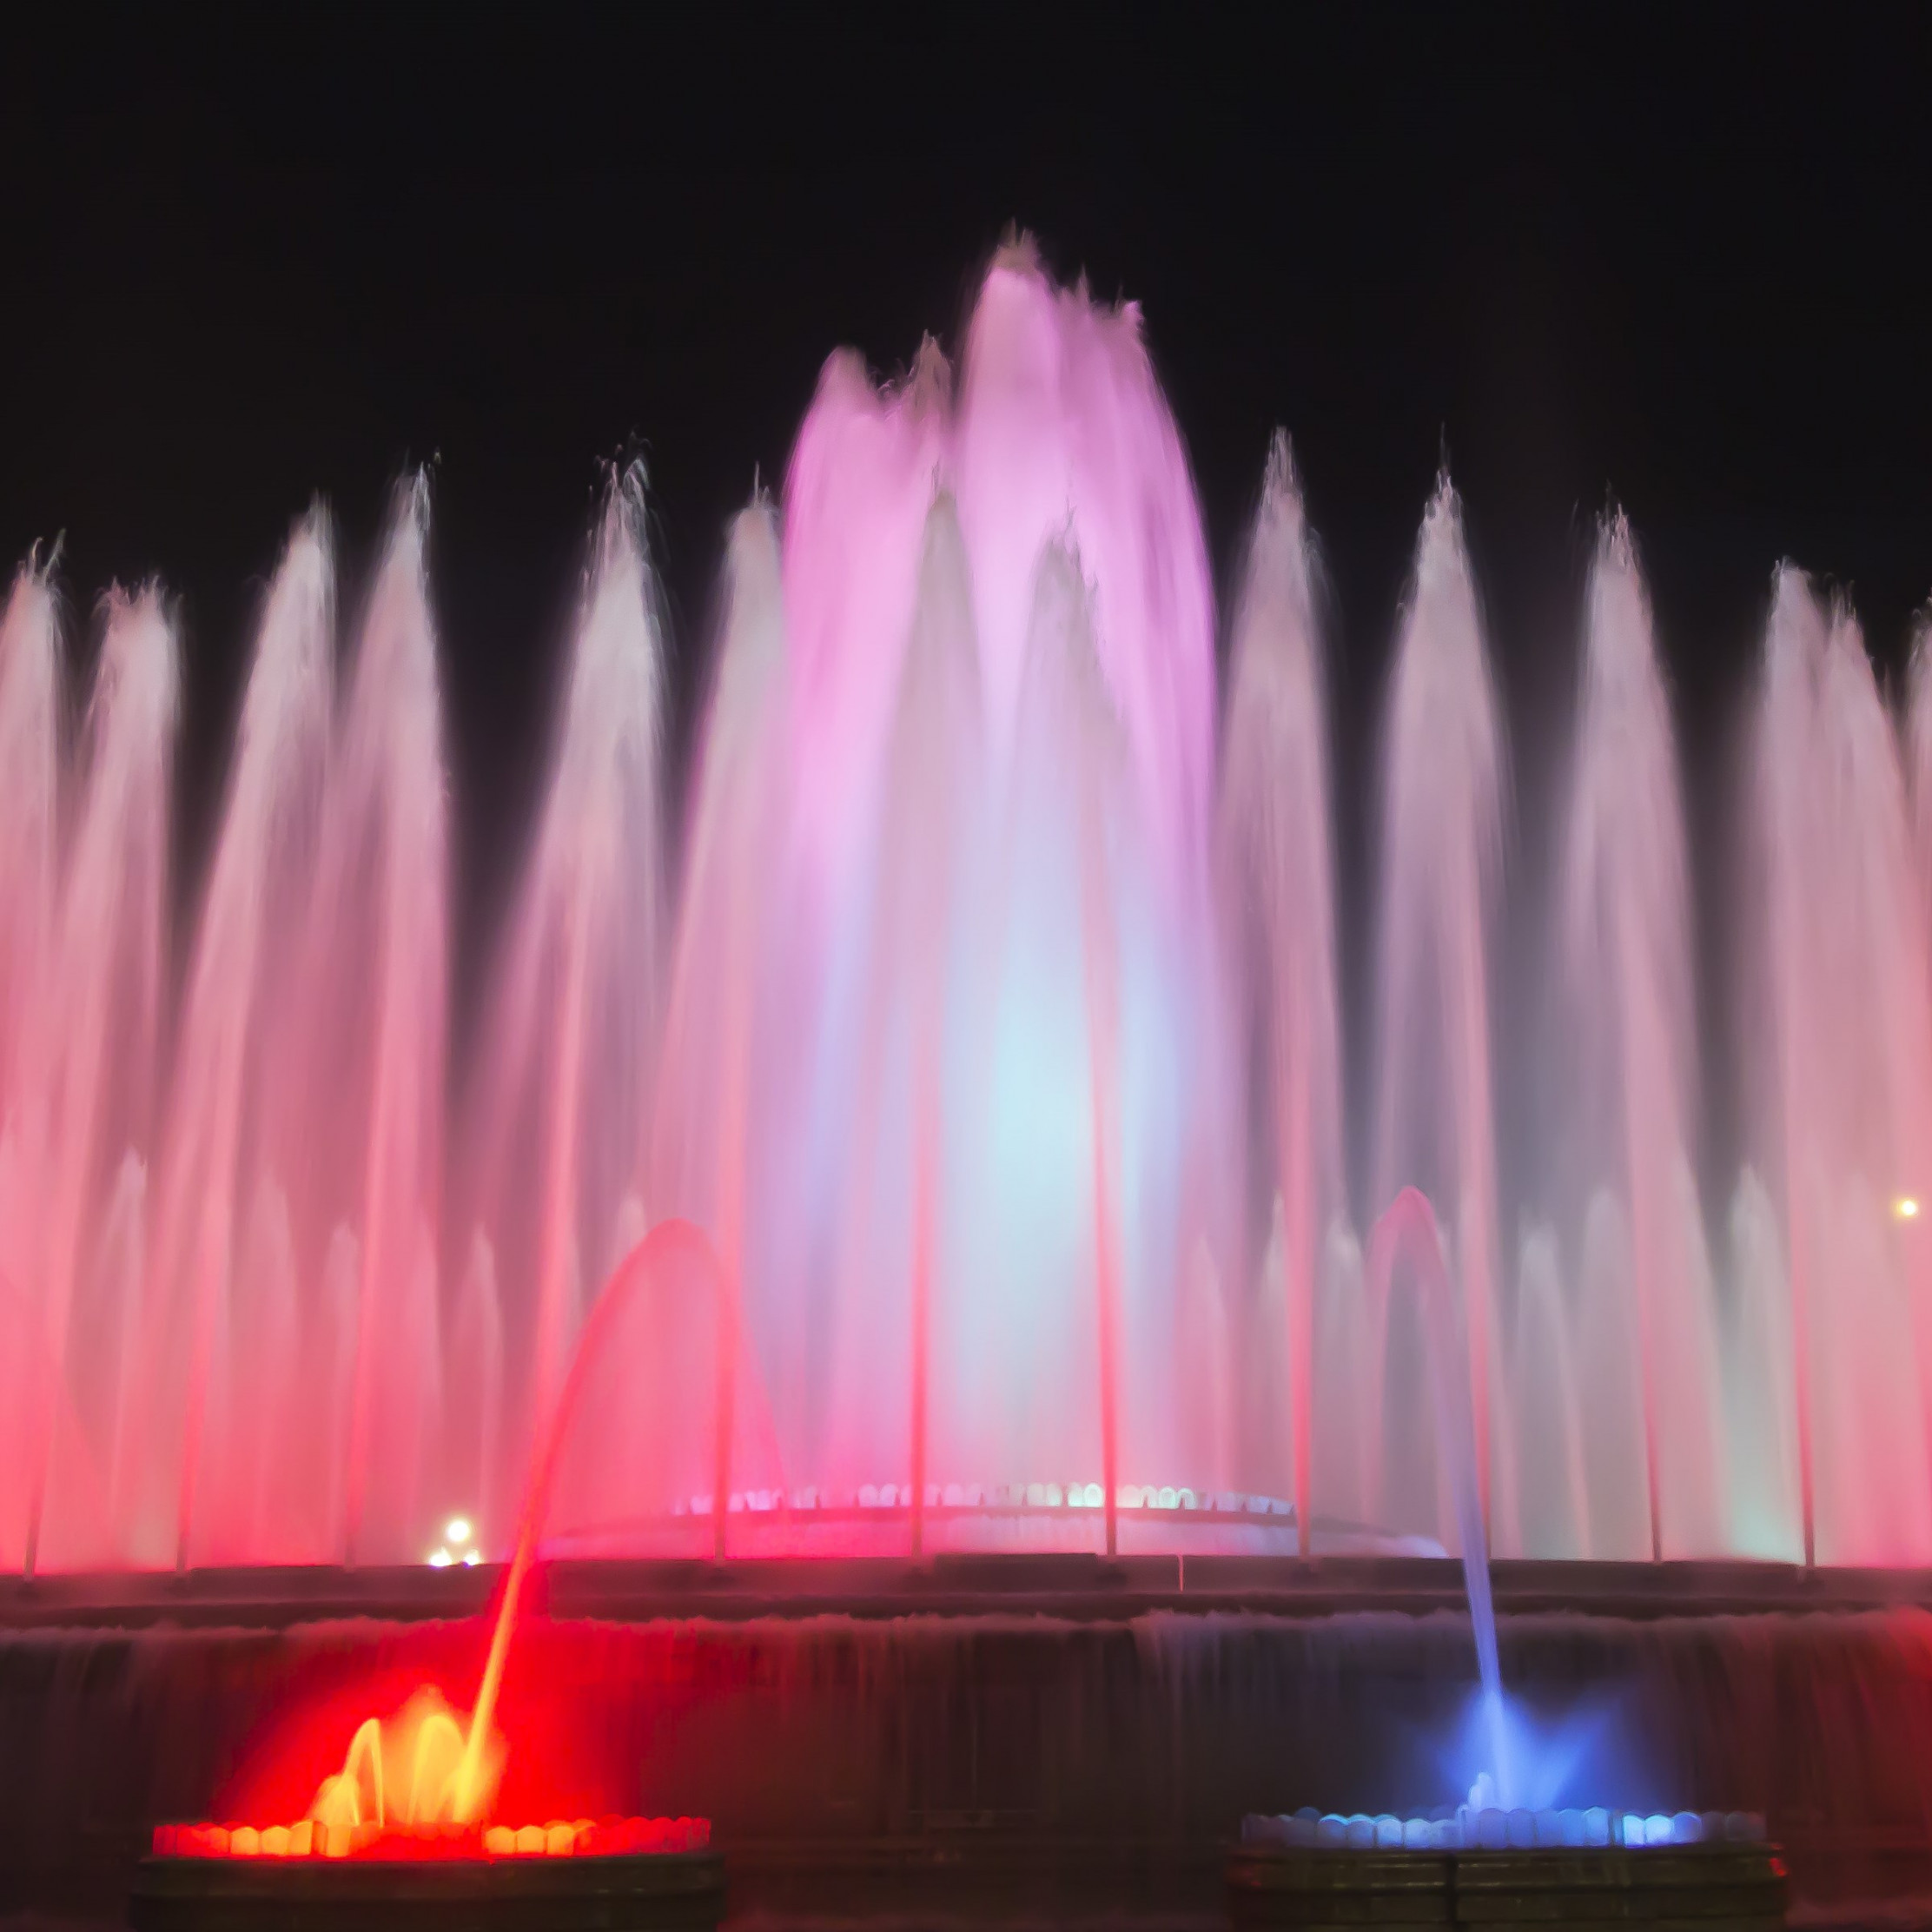 Fountains in Barcelona wallpaper 2224x2224